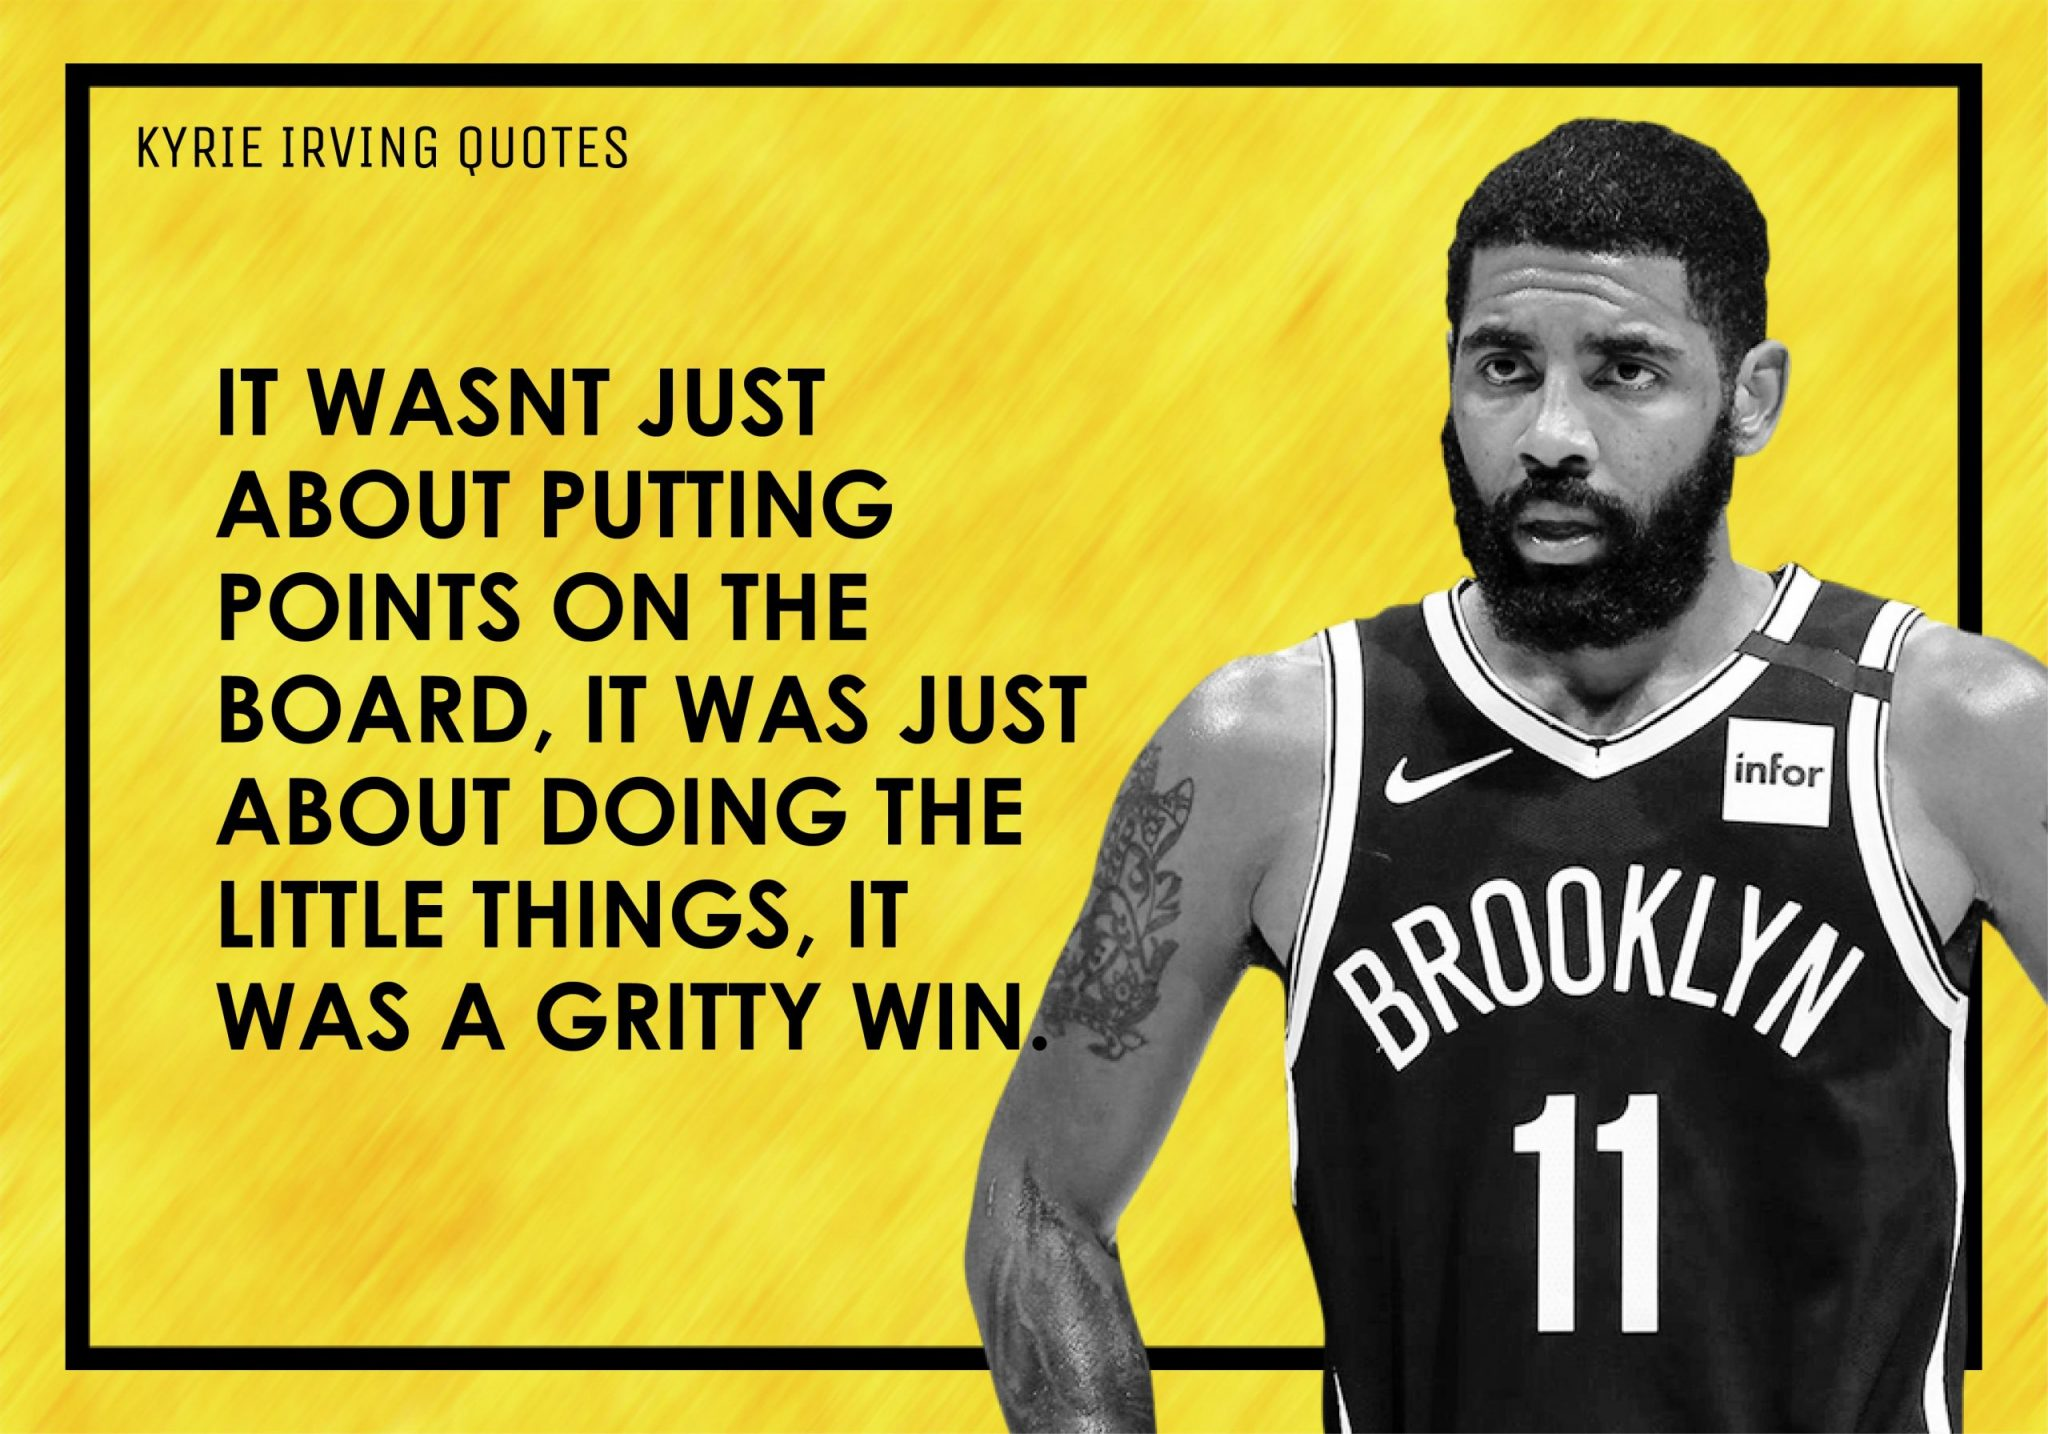 Kyrie Irving Quotes (7)